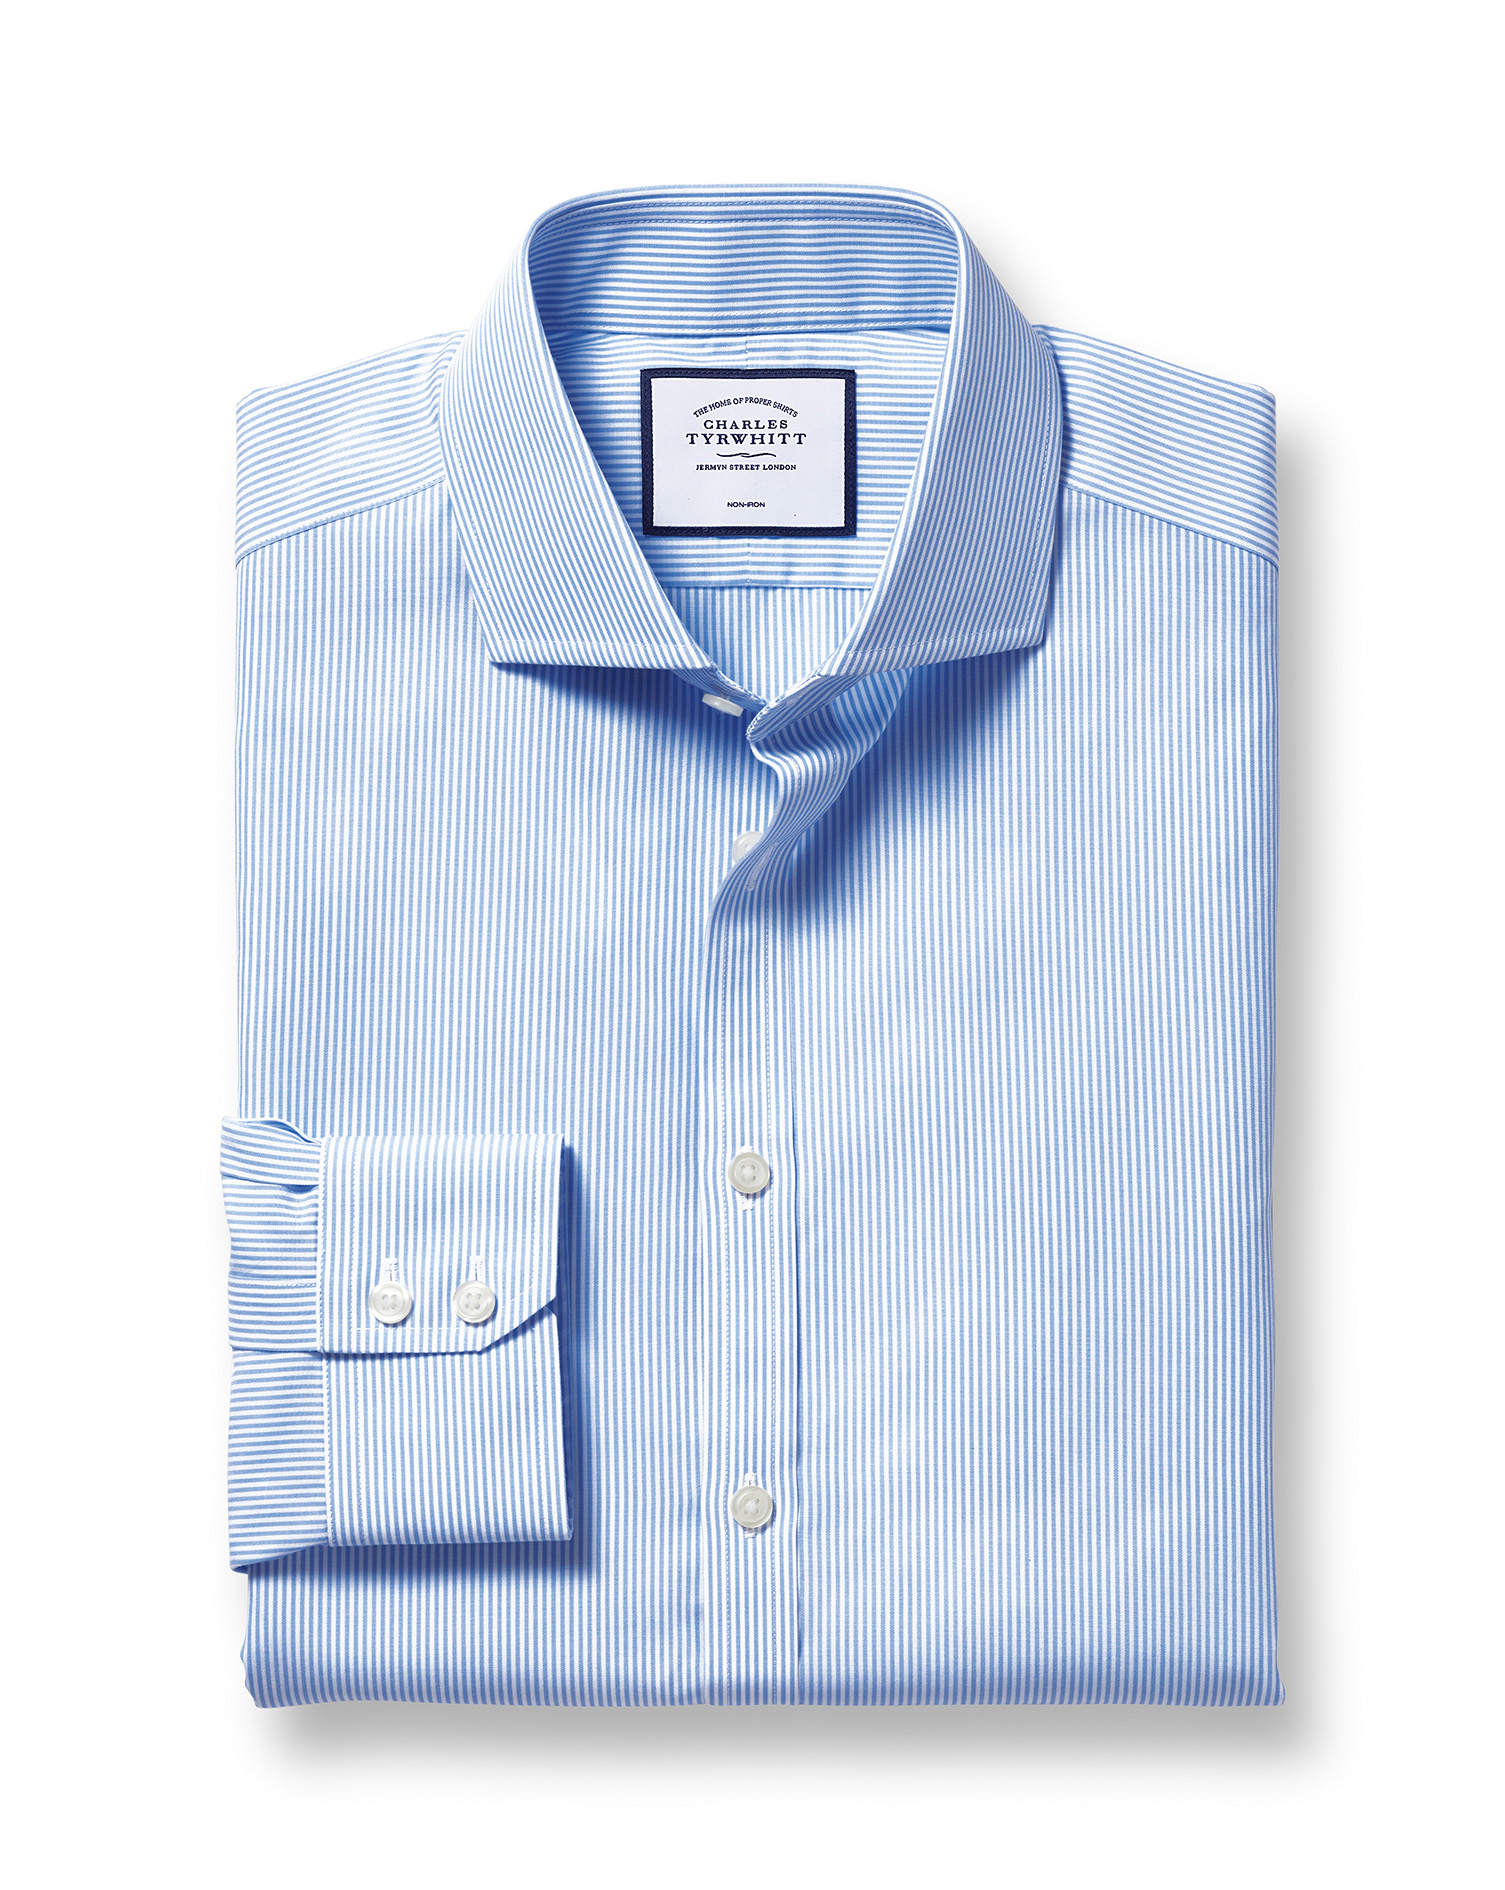 Extra Slim Fit Cutaway Non-Iron Bengal Stripe Sky Blue Cotton Formal Shirt Double Cuff Size 16/33 by